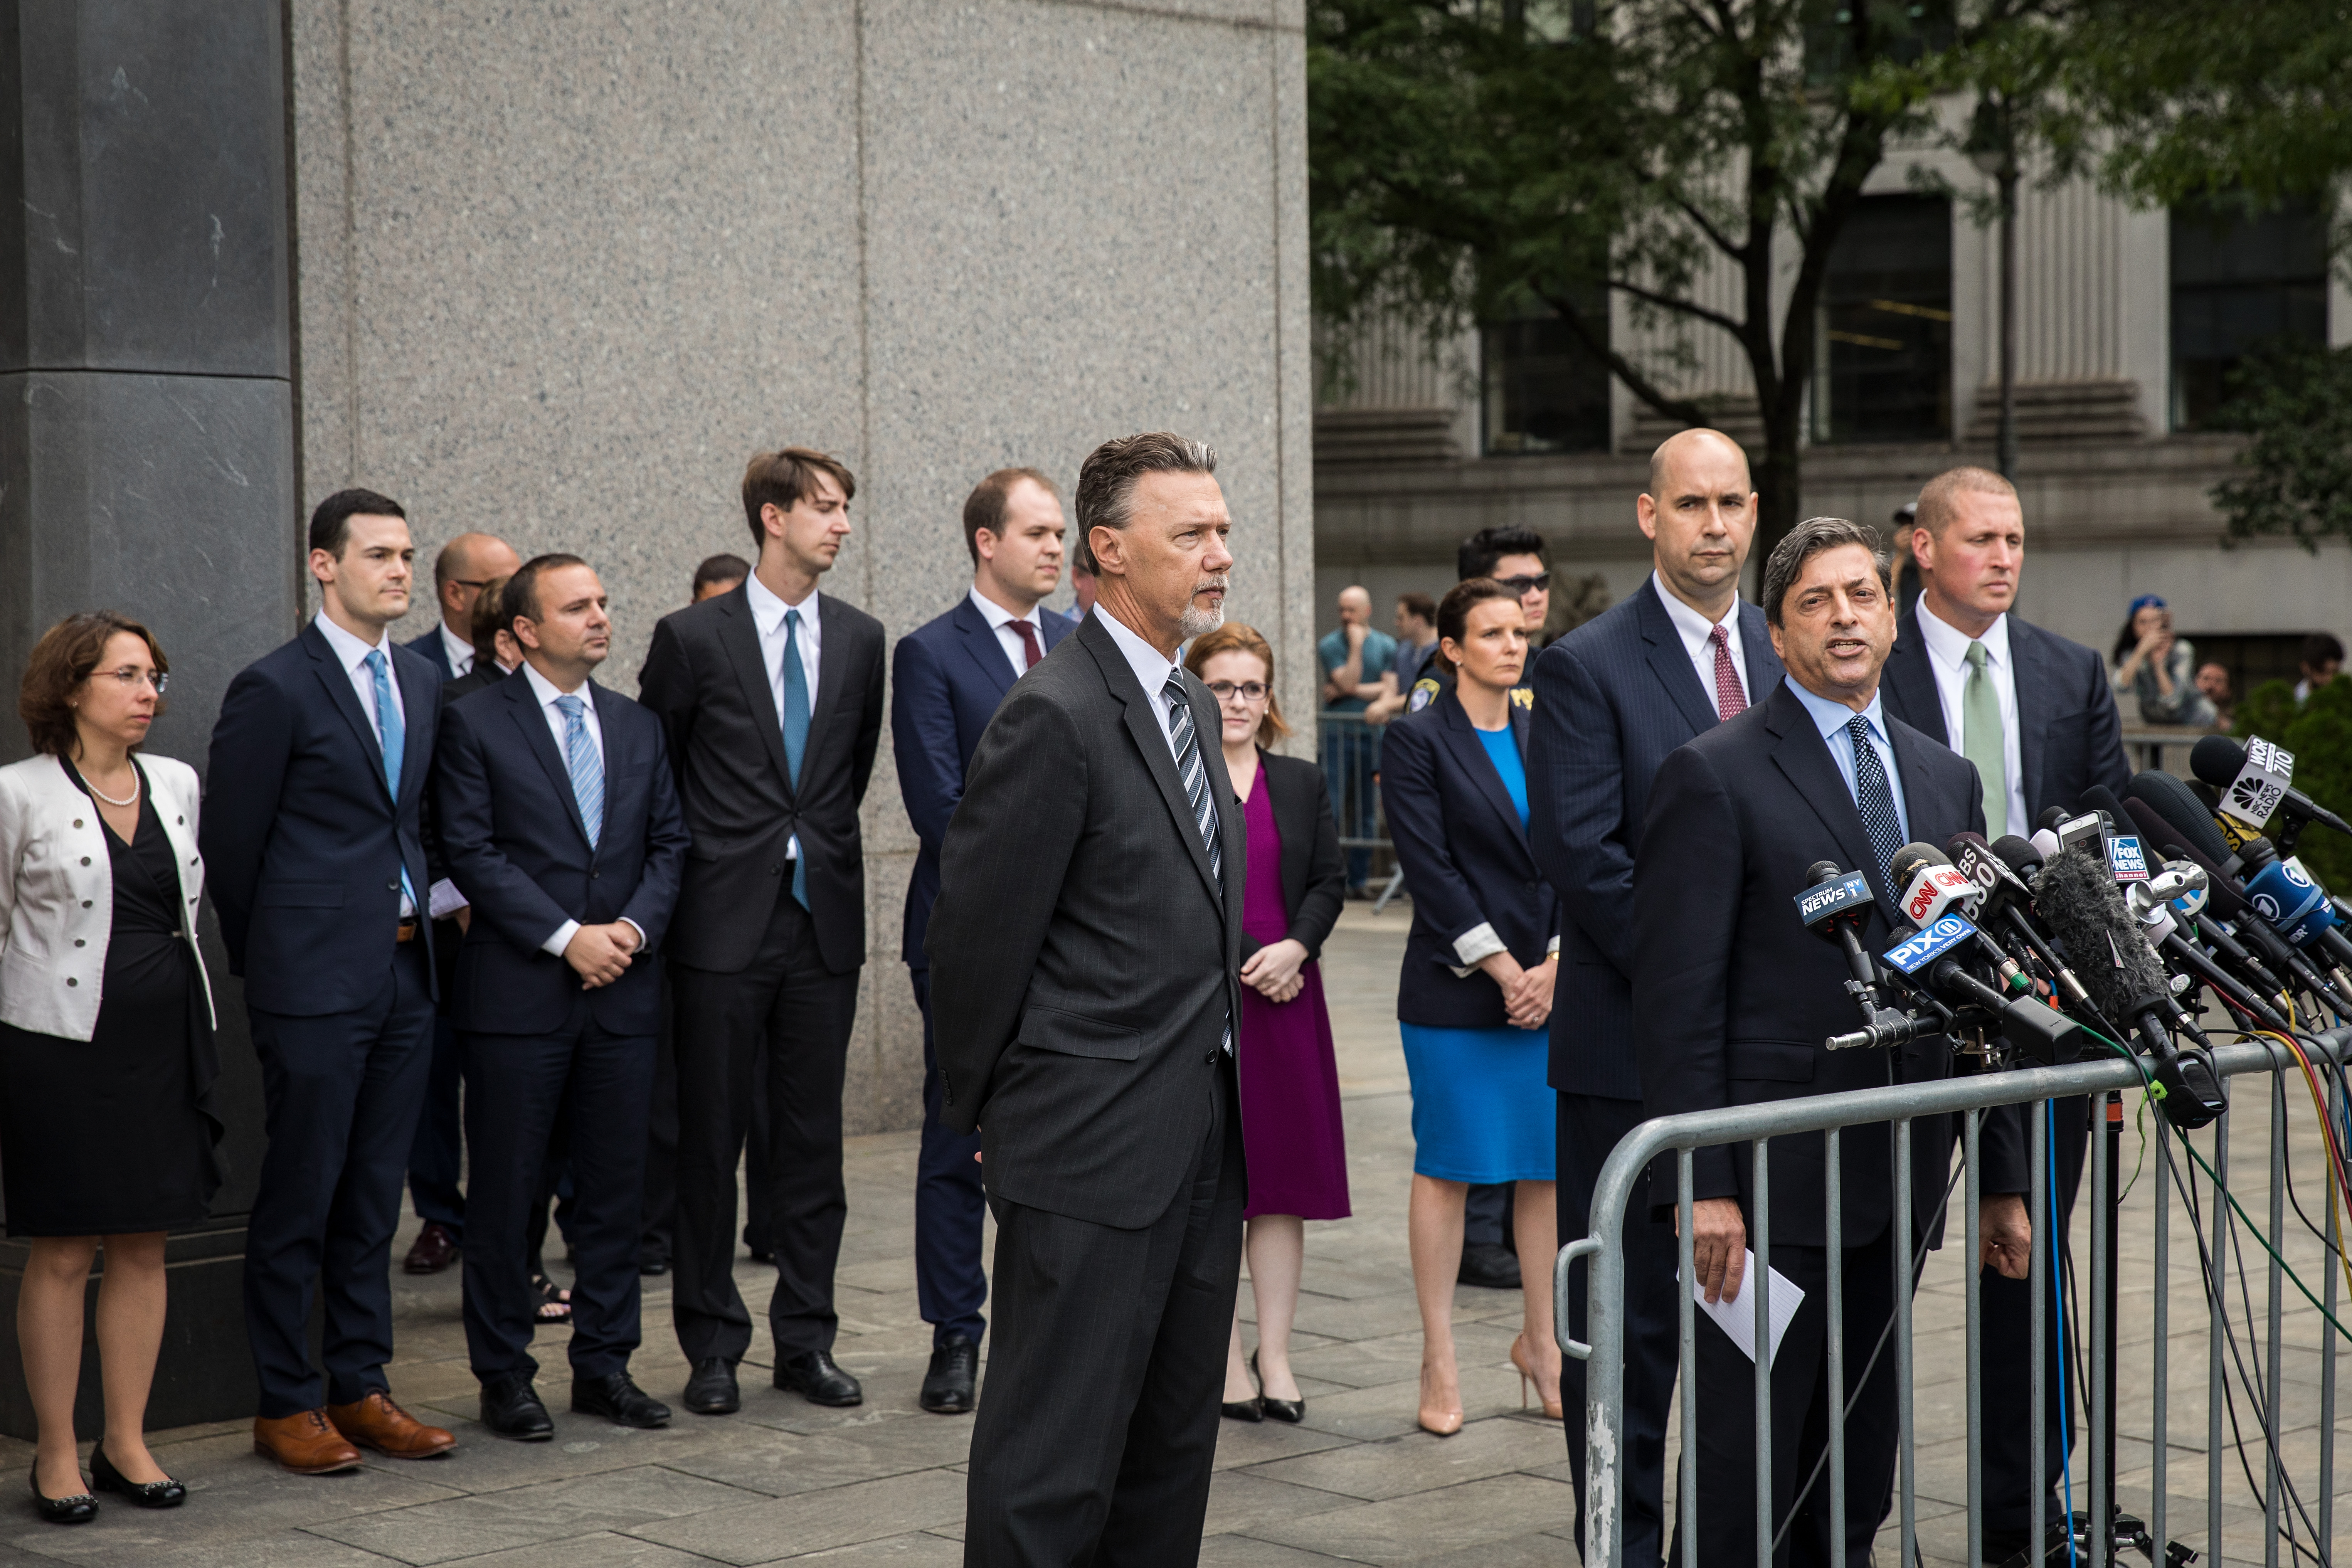 NEW YORK, NY - AUGUST 21: Surrounded by his team of lawyers, Deputy U.S. Attorney for the Southern District of New York Robert Khuzami speaks to the media about the Michael Cohen case outside of federal court, August 21, 2018 in New York City. Cohen reached a plea agreement with prosecutors involving charges of bank fraud, tax fraud and campaign finance violations. (Photo by Drew Angerer/Getty Images)